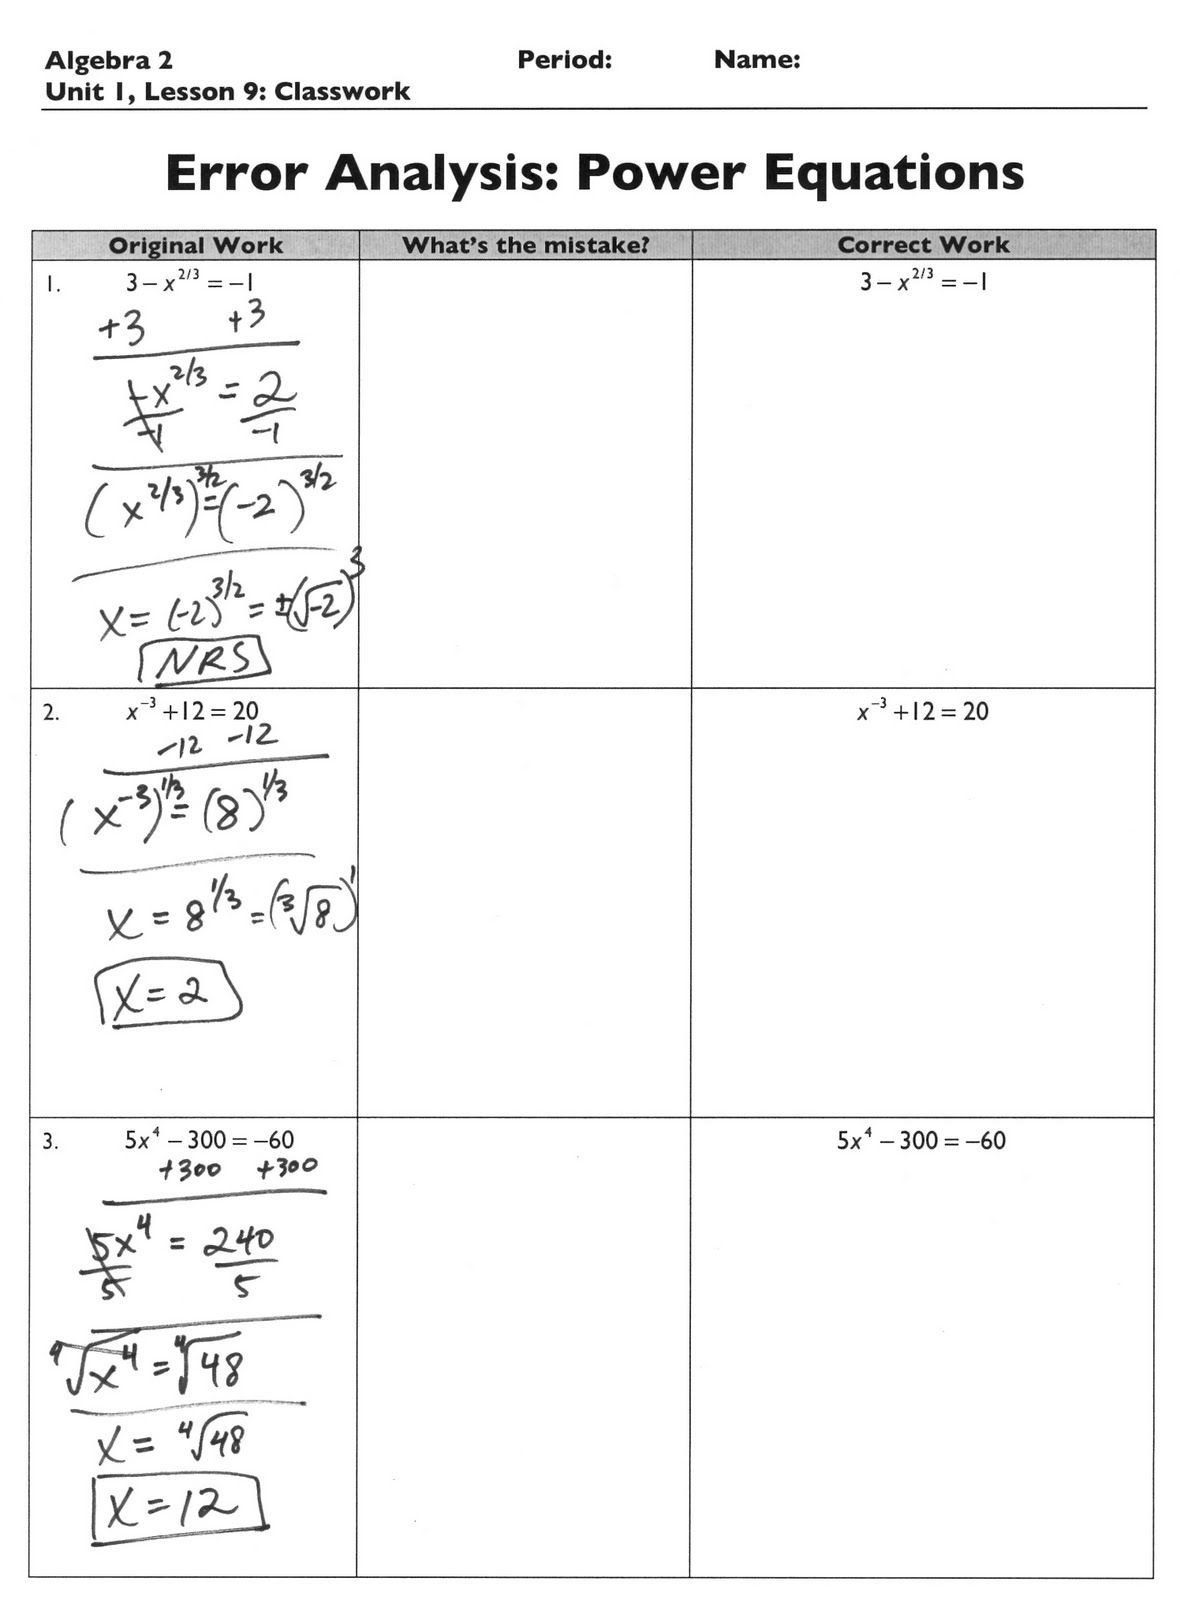 Algebra 2 Error Analysis Error Analysis Algebra 2 Teaching Algebra